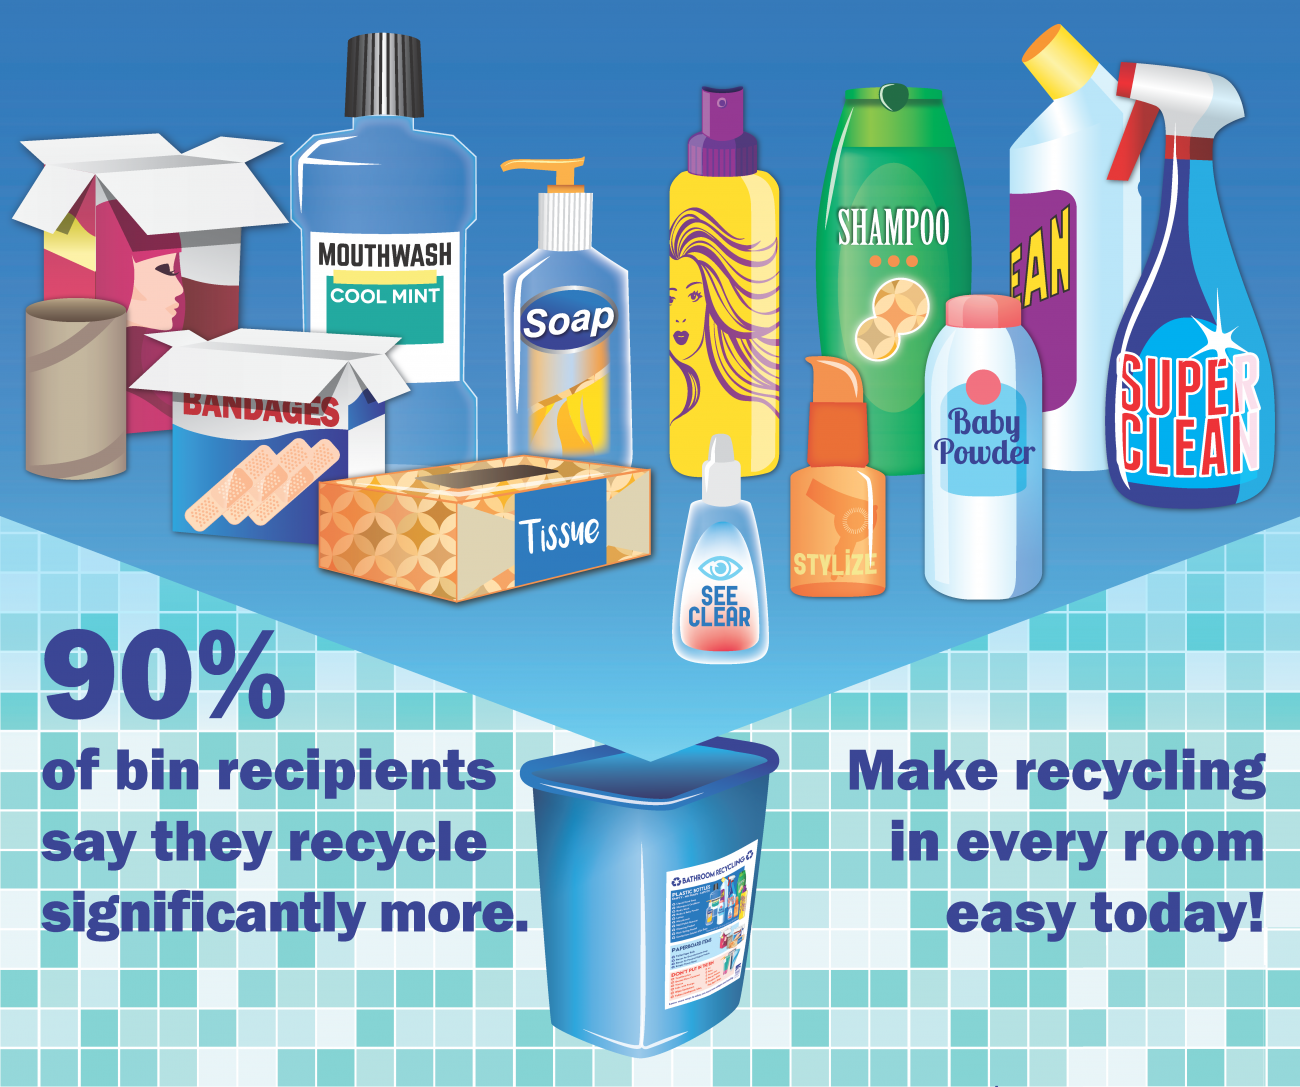 Flyer encouraging residents to recycle in every room of the house.